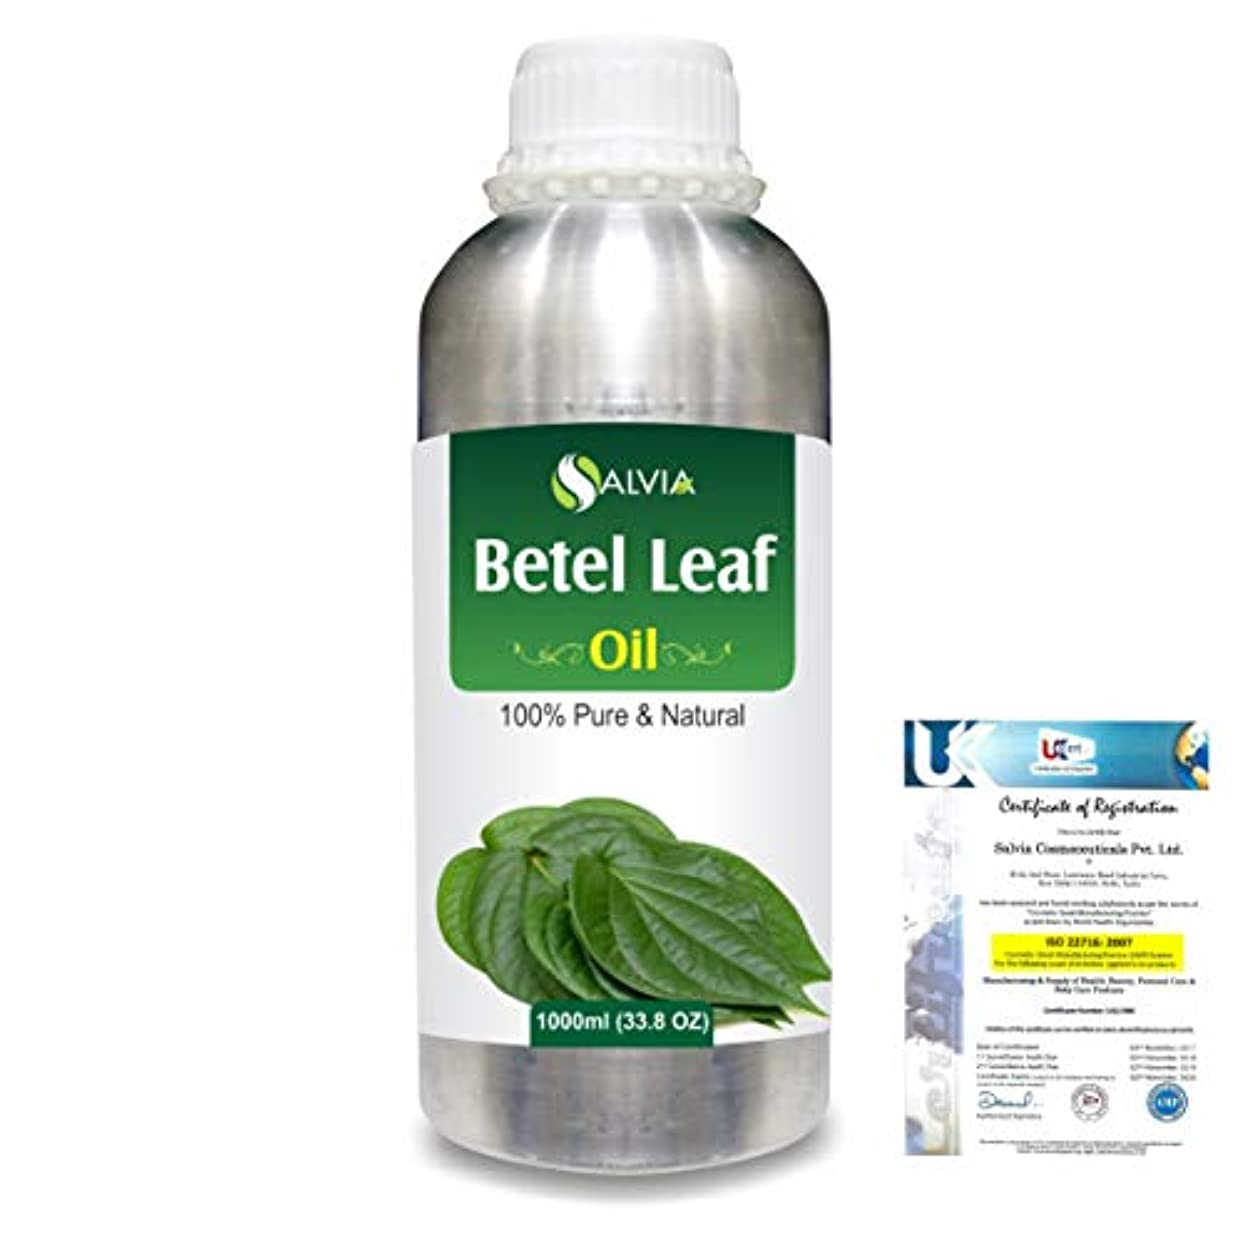 眠る愛されし者世界に死んだBetel Leaf (Piper Betle) 100% Natural Pure Essential Oil 1000ml/33.8fl.oz.